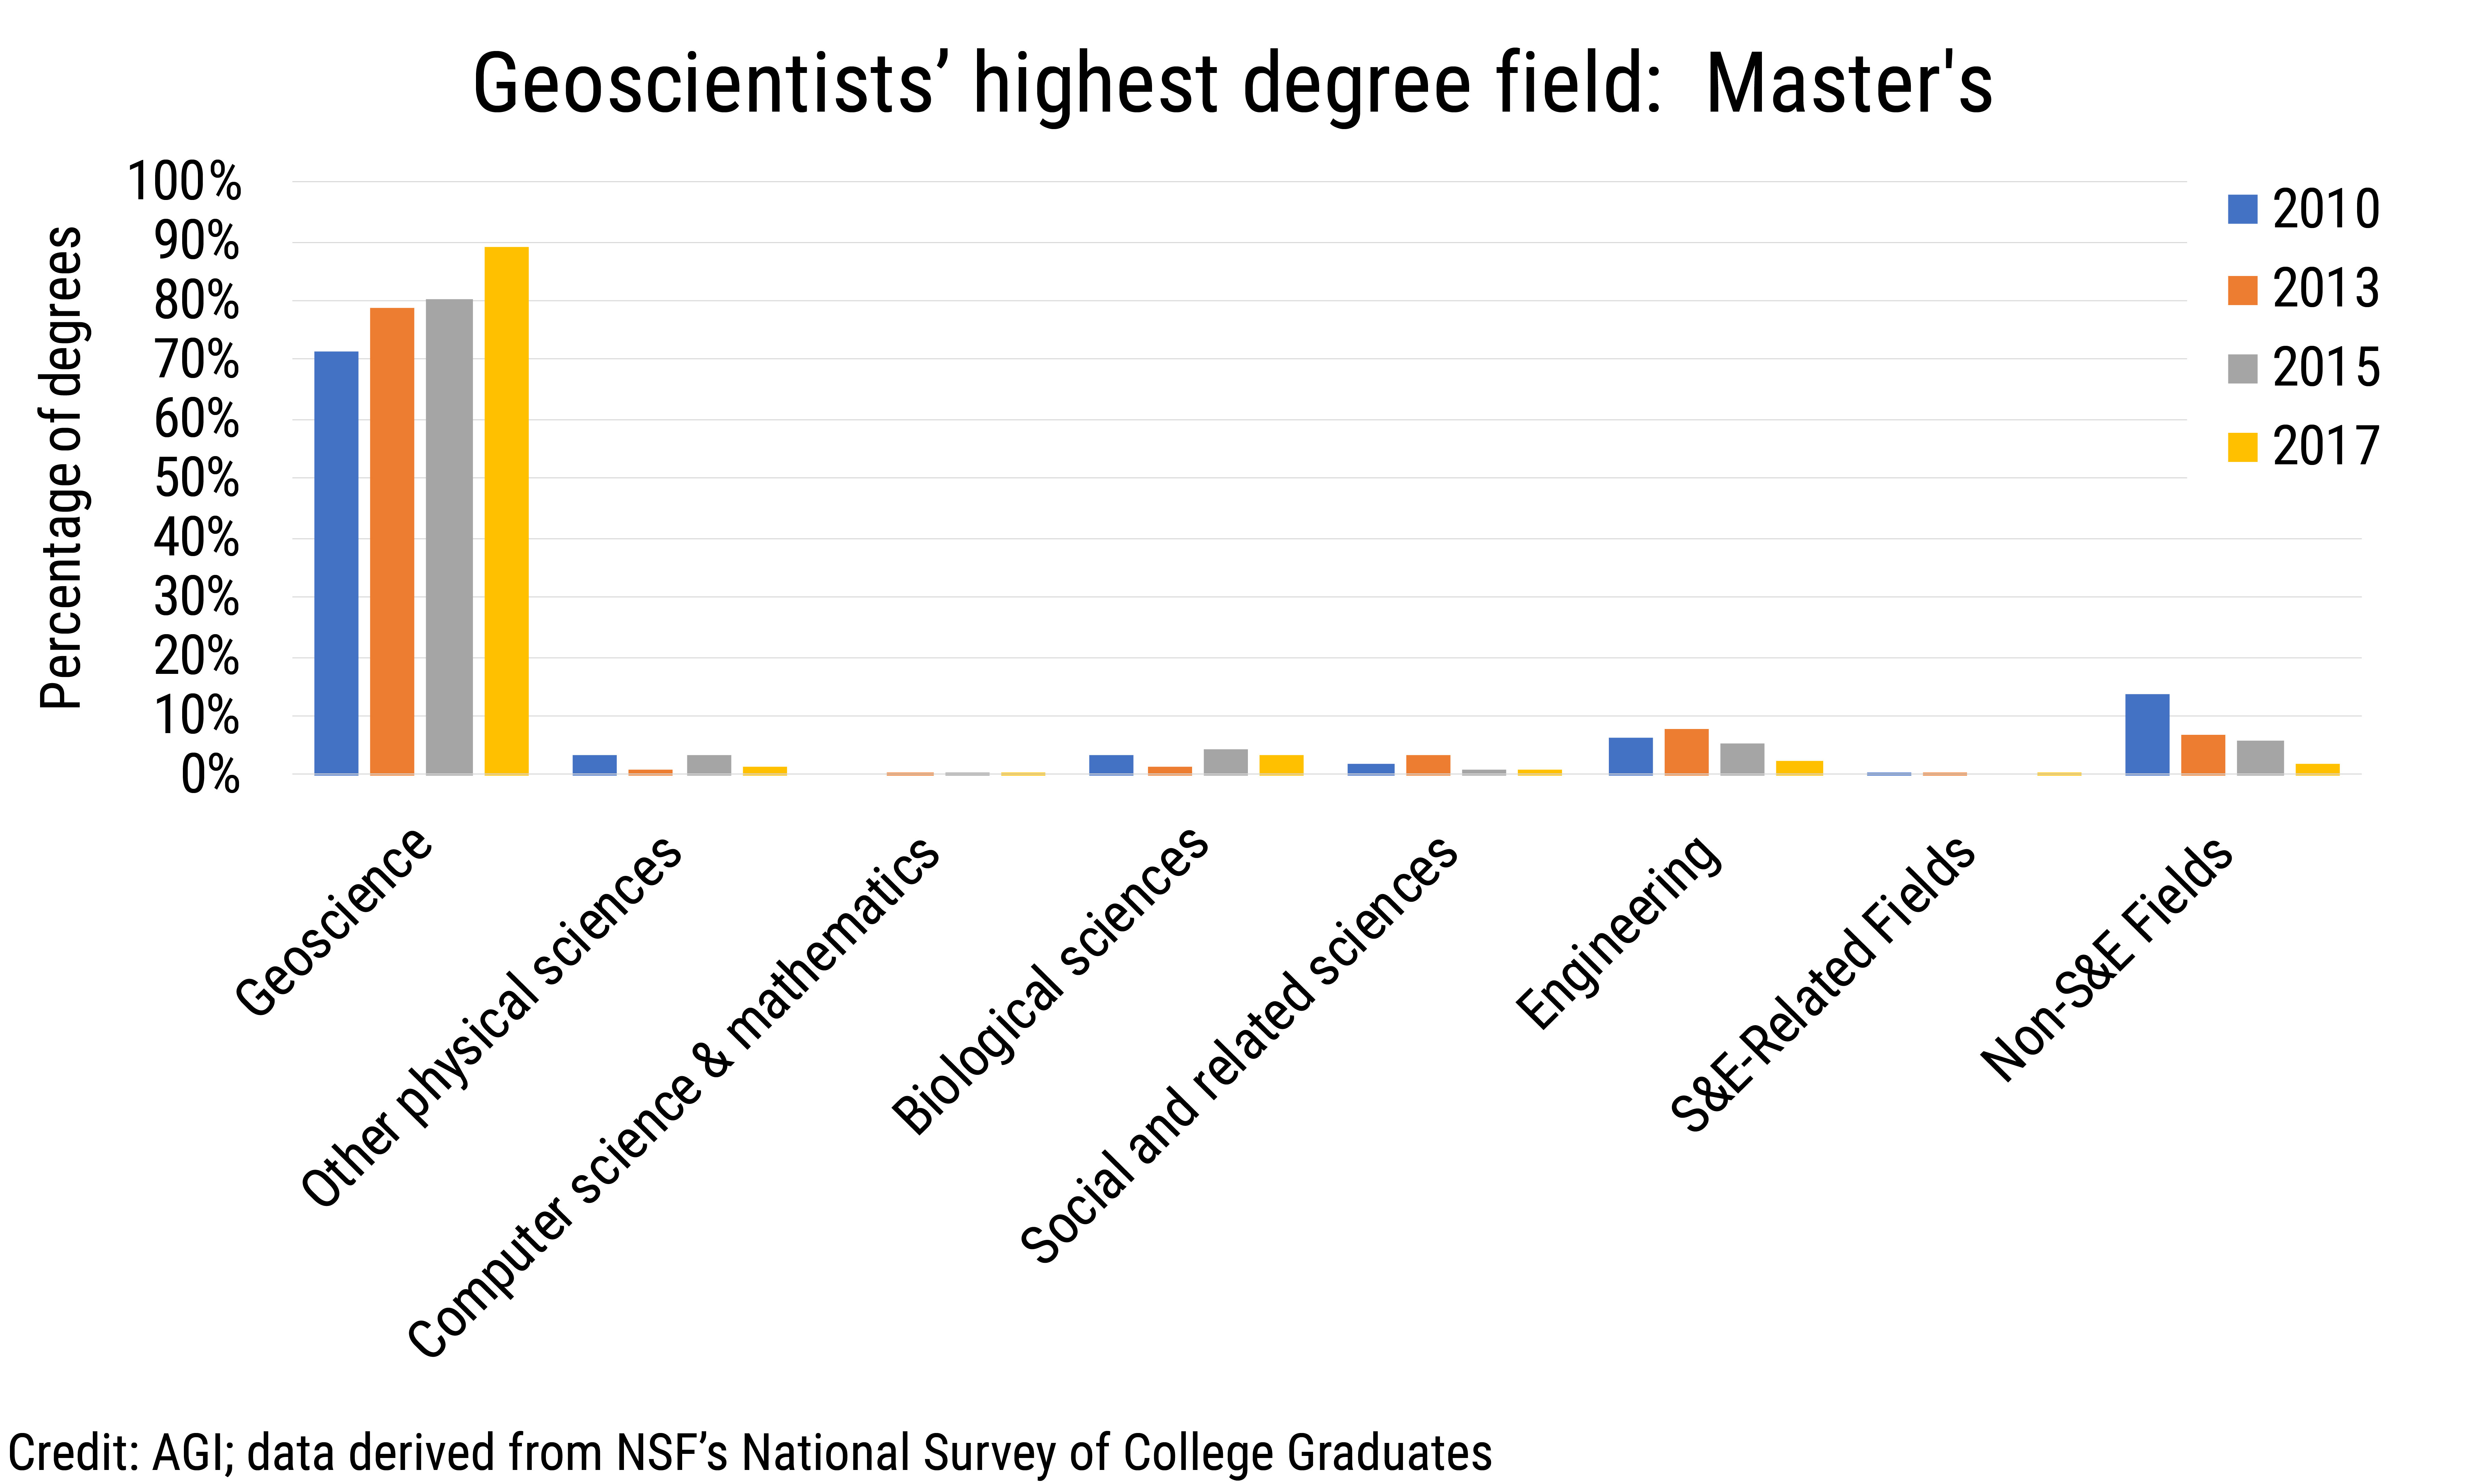 Data Brief 2019-012 chart02: Geoscientists' highest degree field: Master's (credit: AGI; data derived from NSF NSCG)